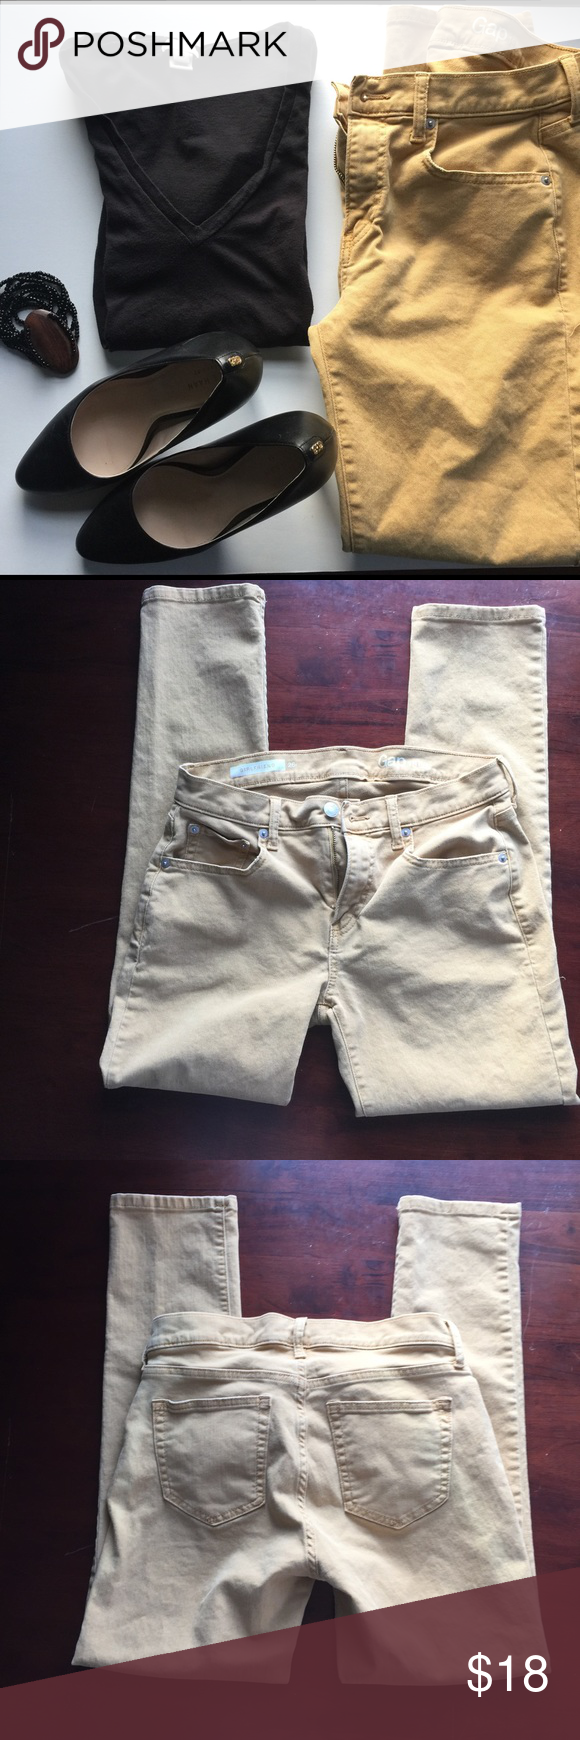 """GAP 1969 Kick Boot Pants Measurements: Rise-9"""" Inseam- 26.5"""" Waist- 26"""". 🚭All items from a smoke free home. 👆🏼Items is as described, feel free to ask questions. 📦I am a super fast shipper. 🛍 Save with a bundle. 😍Like this item? Check out my closet! 💞Thanks for looking! GAP Pants"""